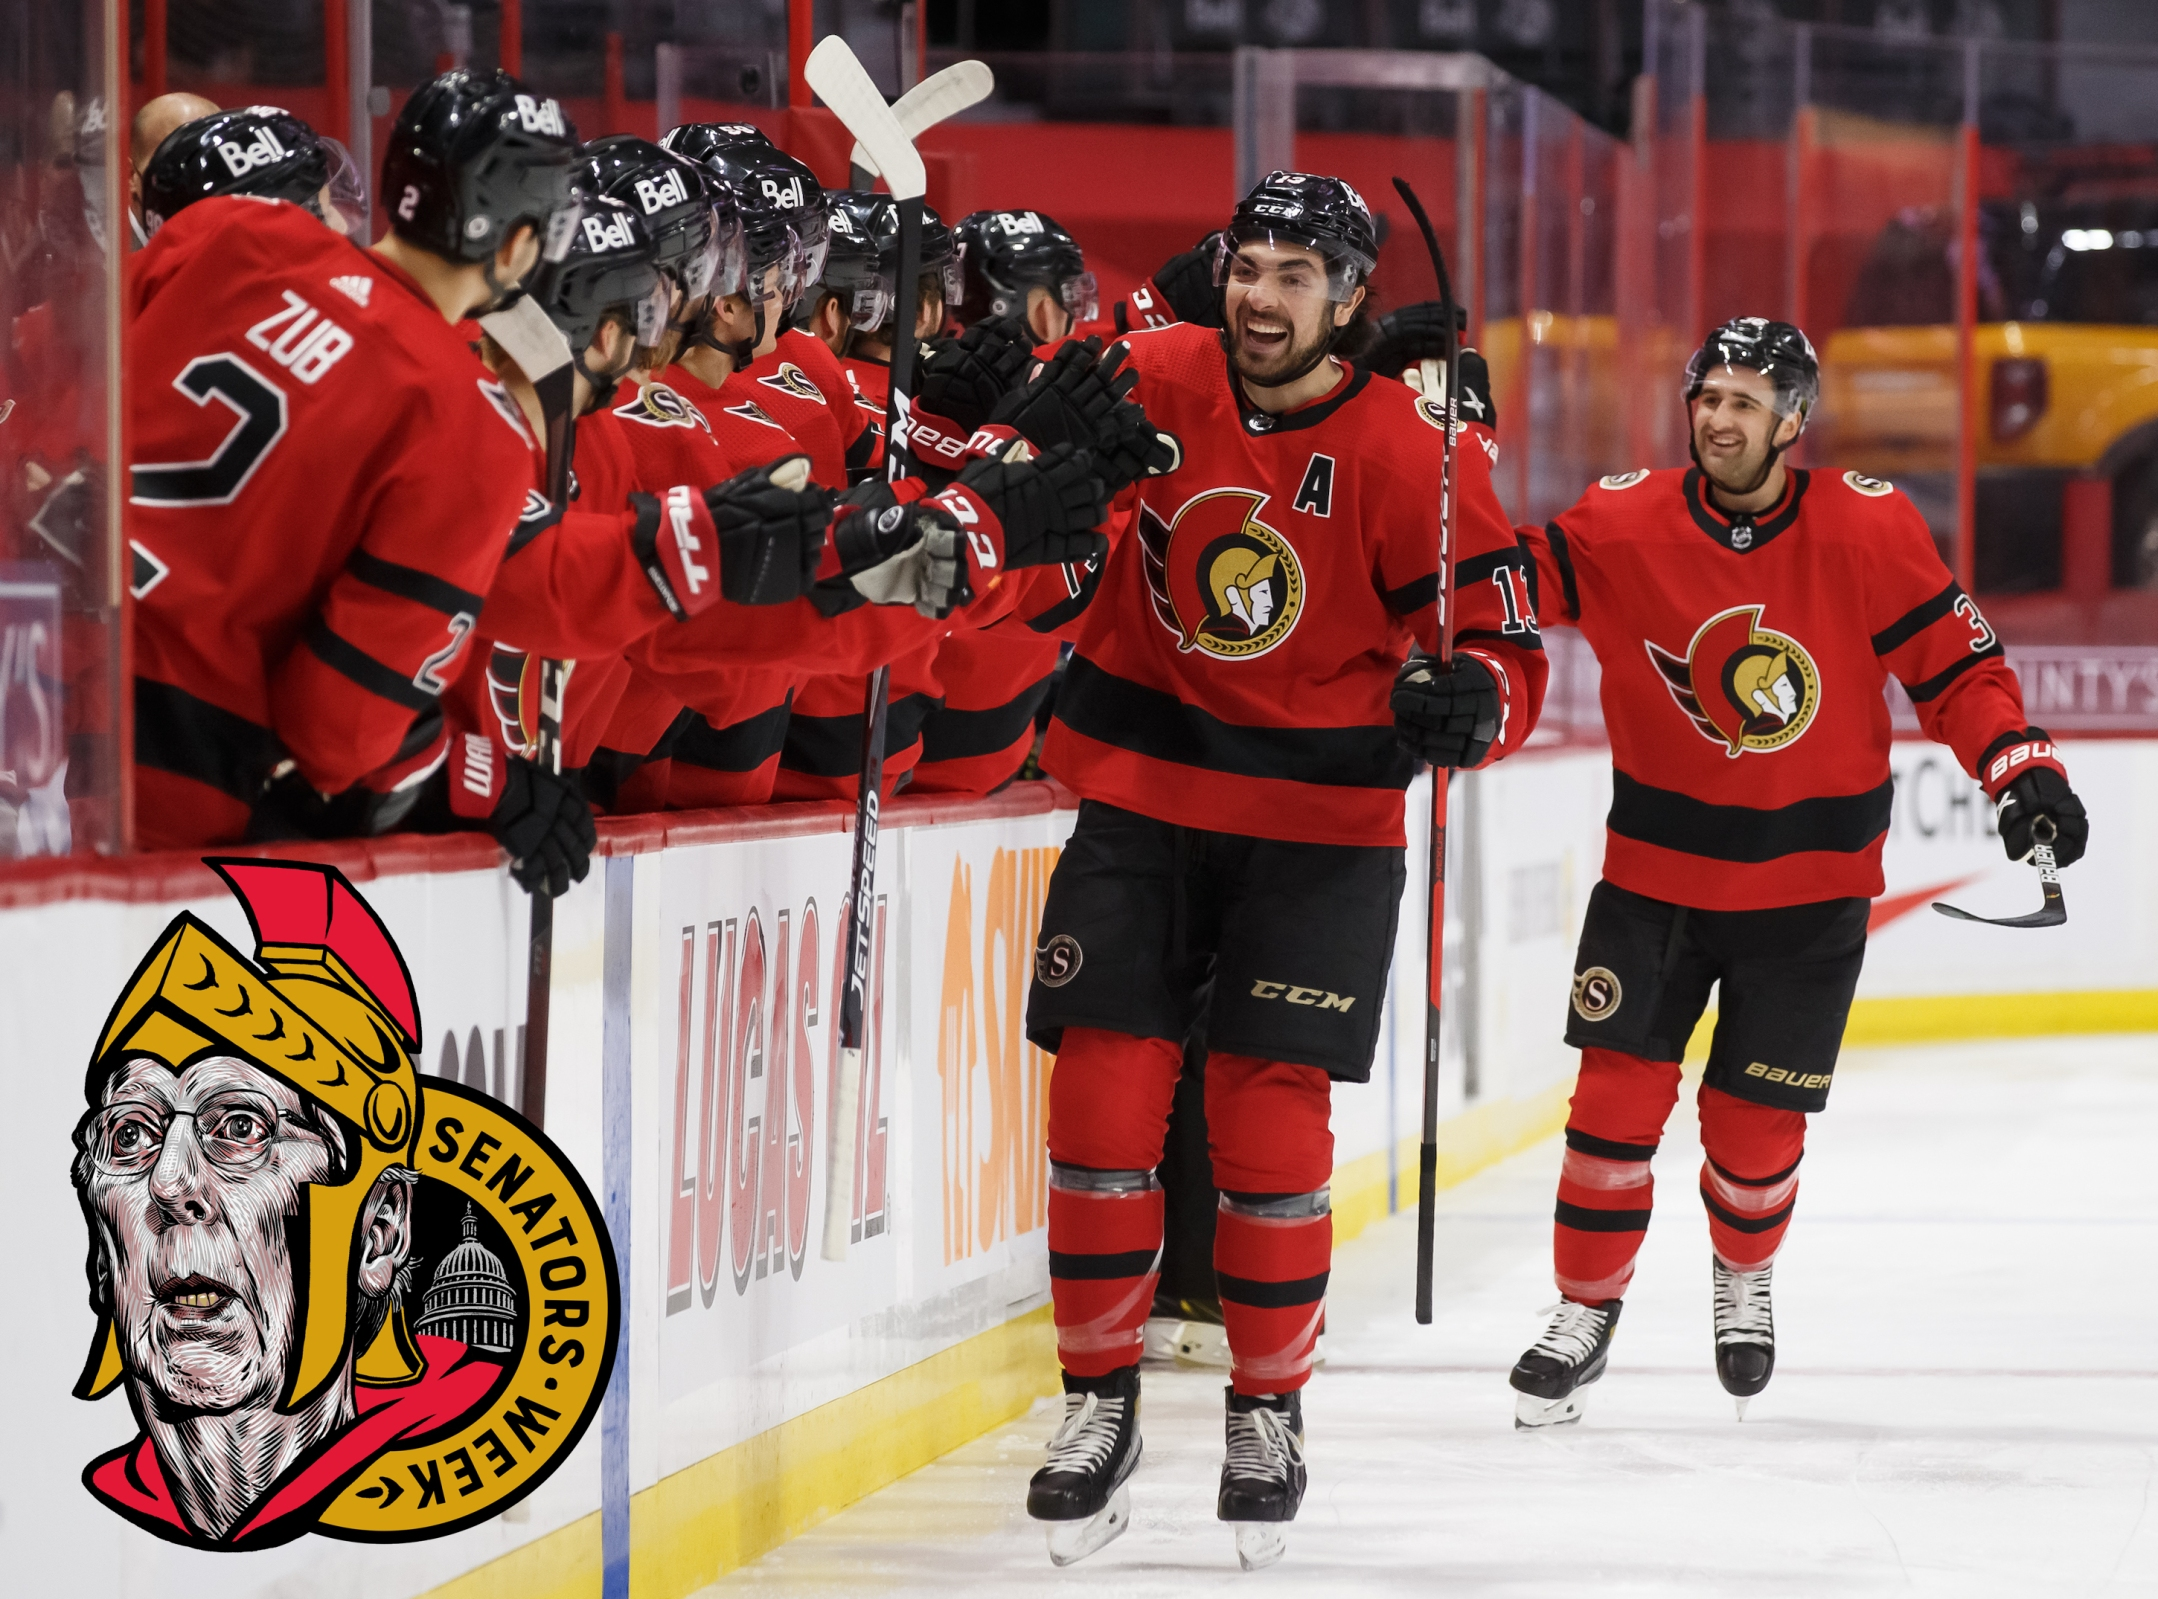 Nick Paul #13 of the Ottawa Senators celebrates his first period goal during an NHL game against the Winnipeg Jets at Canadian Tire Centre on April 14, 2021 in Ottawa, Ontario, Canada.